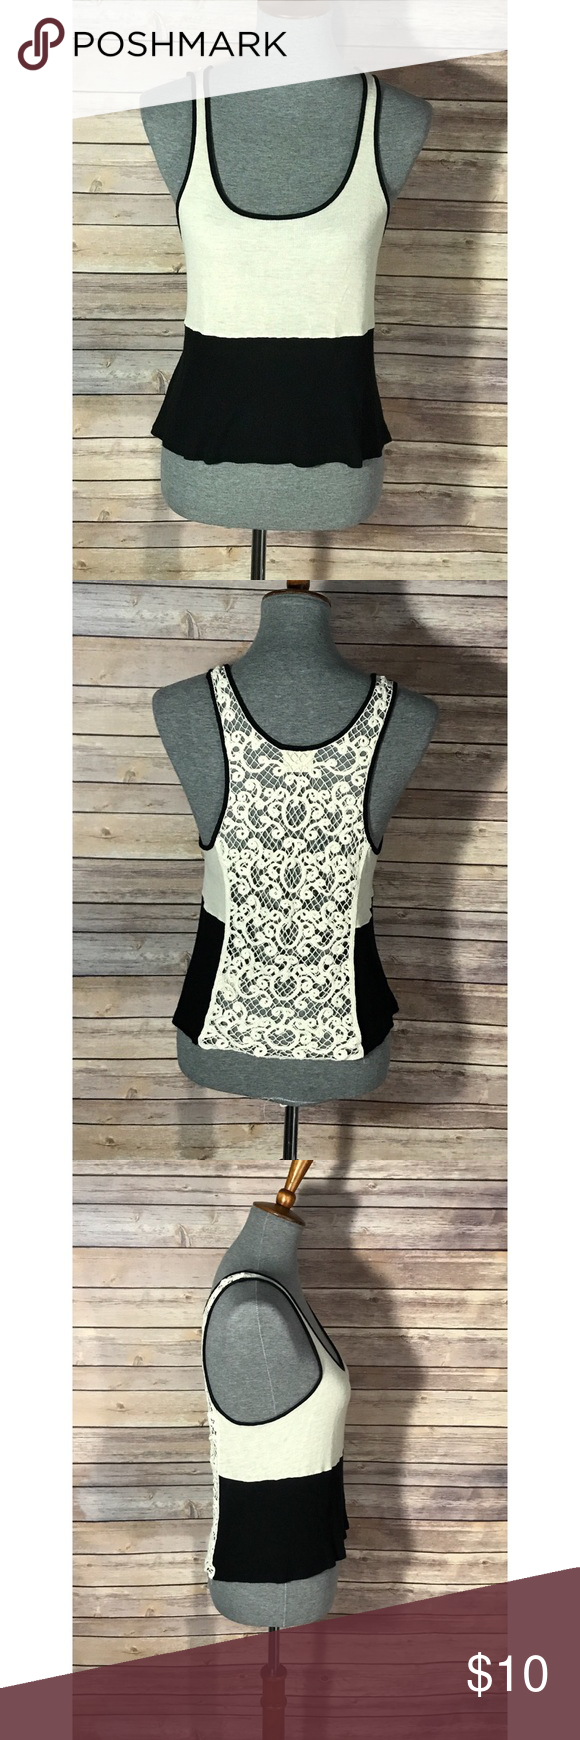 UO Tank top Flowy tank perfect for layering. Small stain